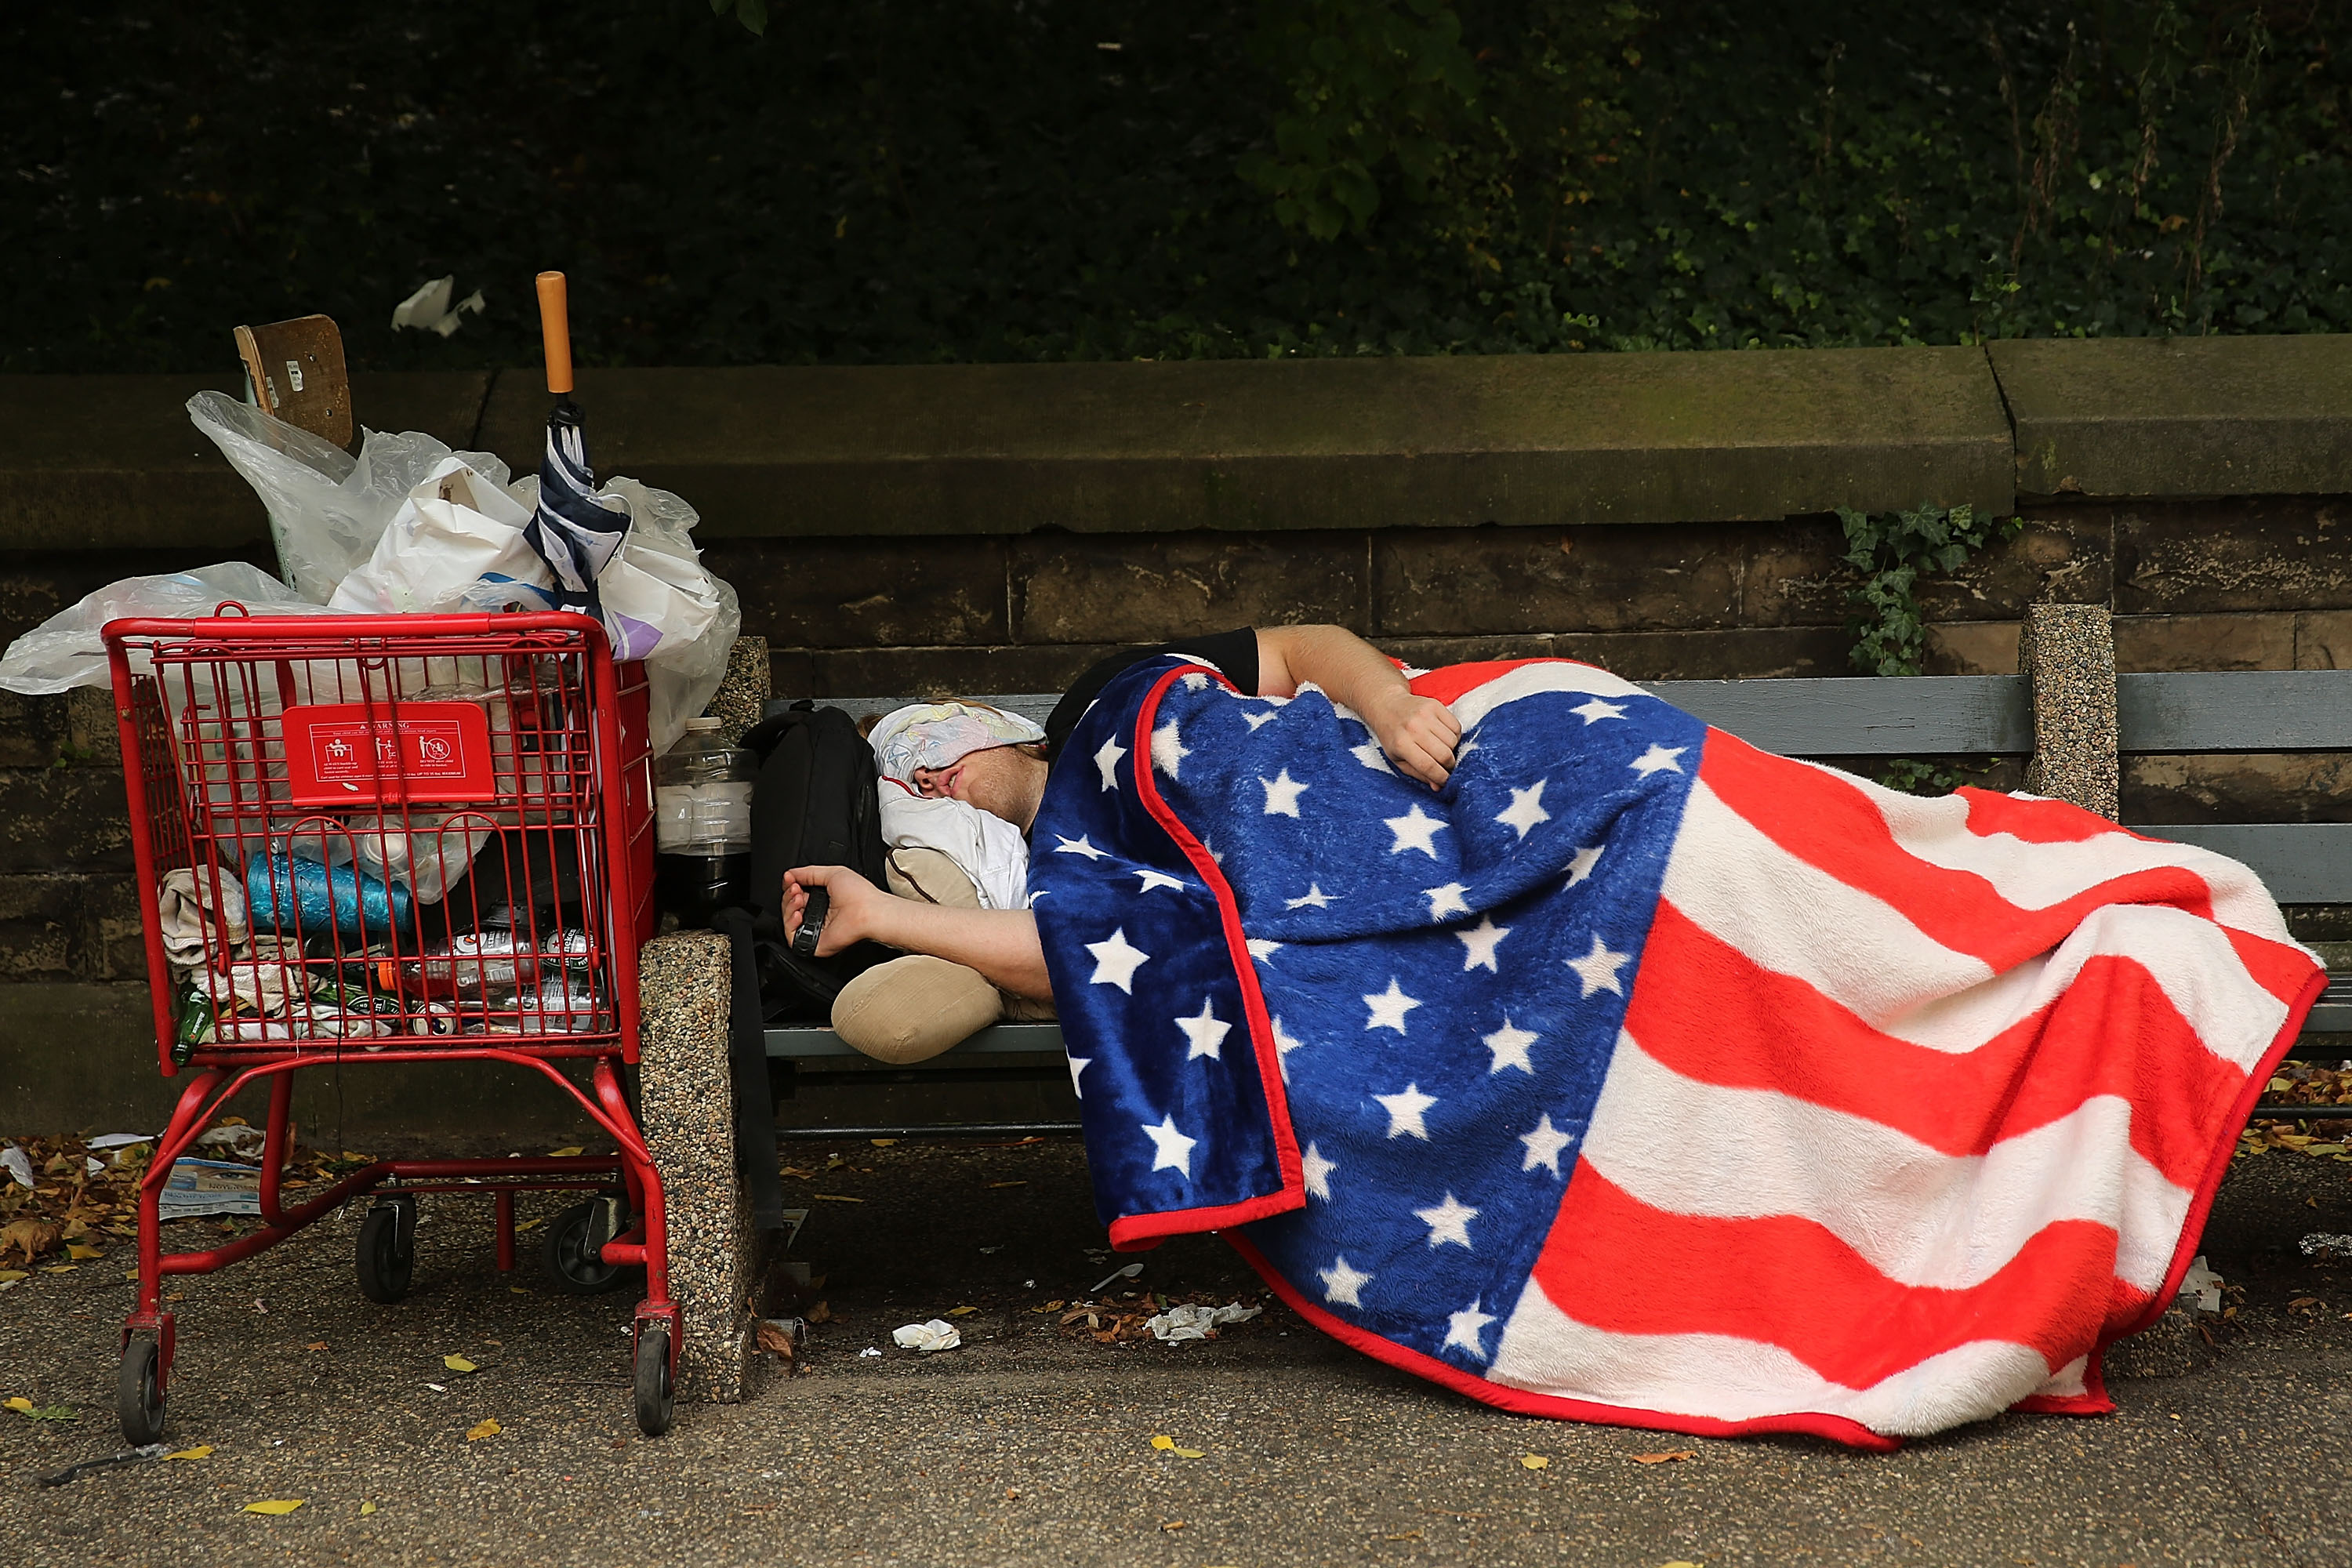 Poverty 10 Cities With The Most Homeless People